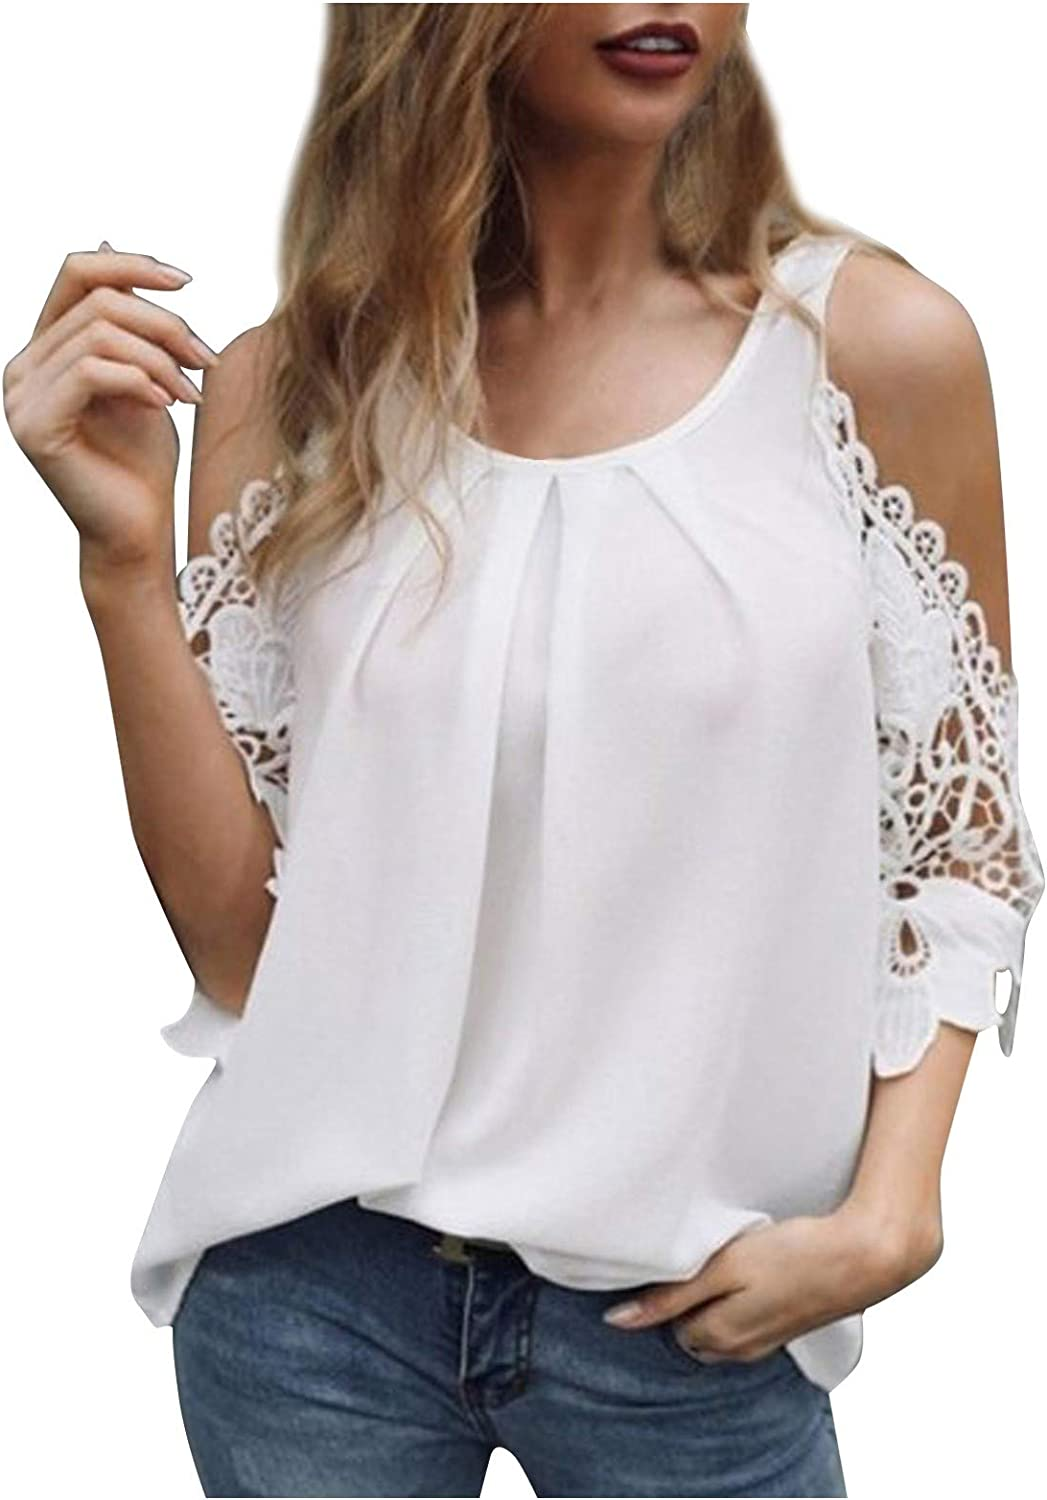 Super-cheap Women's Short Sleeve Cold Shoulder O Neck Casual Tops Price reduction Halt Tunic